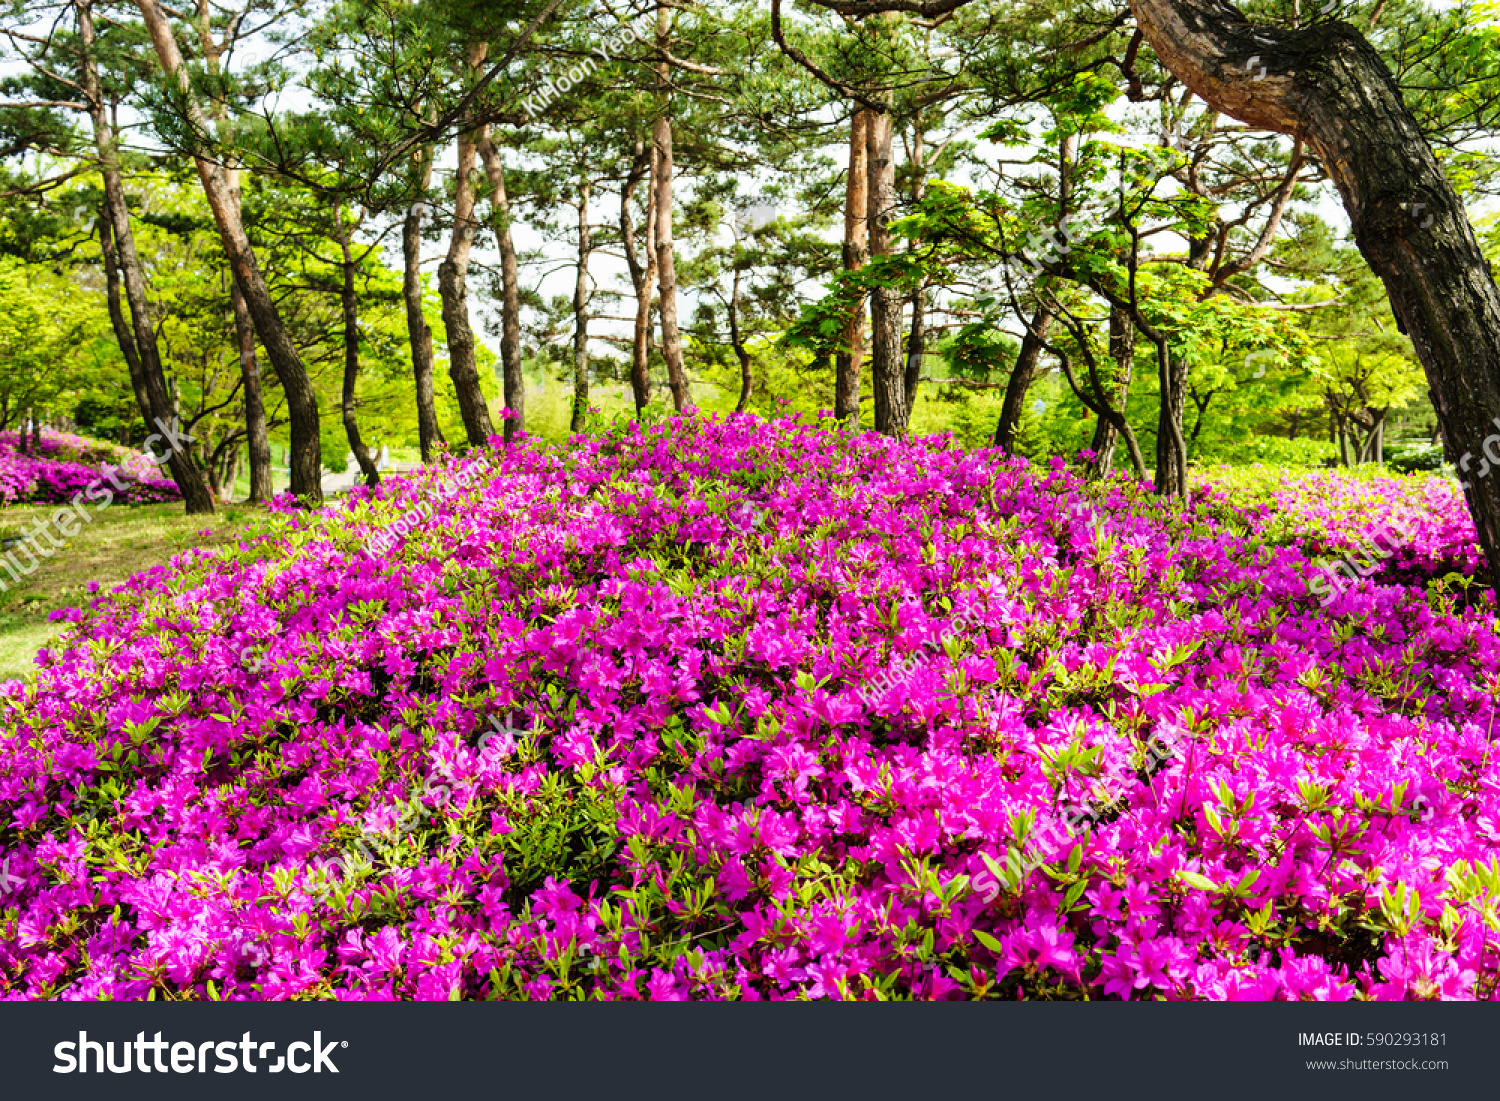 The azaleas burst into blossom of pine trees ez canvas id 590293181 mightylinksfo